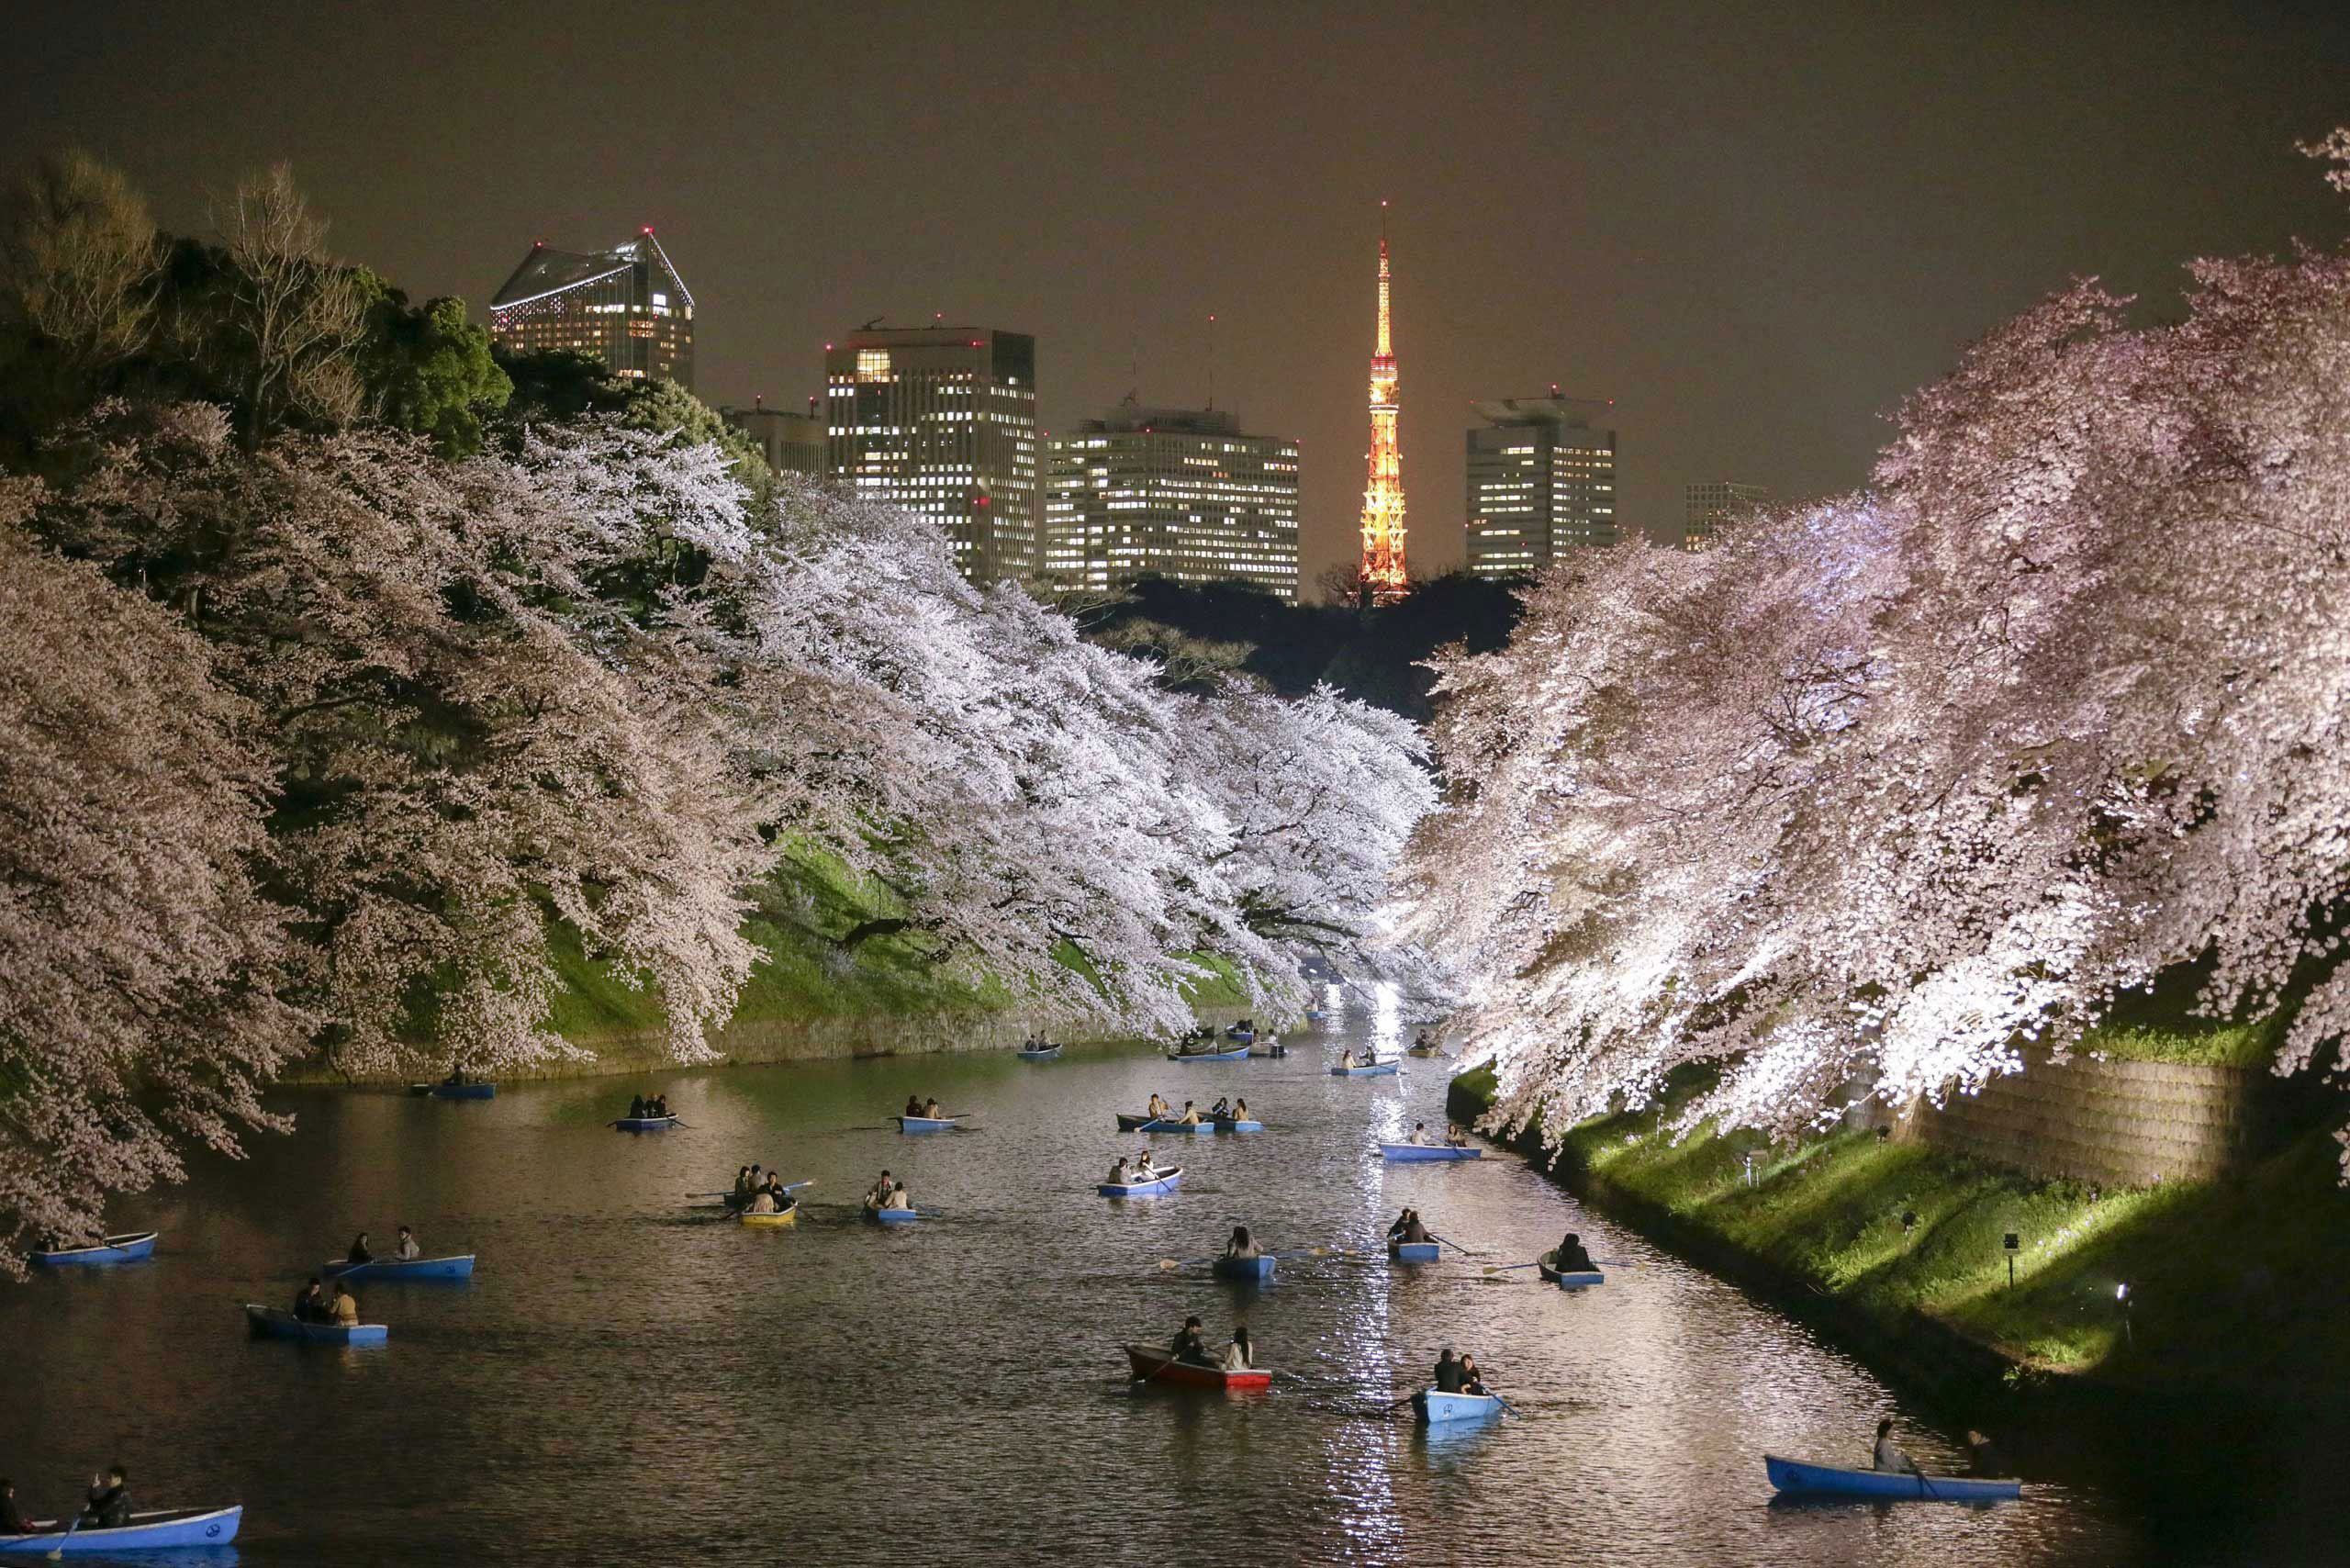 People Rowing Boats Enjoy Night View Of Cherry Blossoms In Full Bloom On Chidorigafuchi Moat In Tokyo Japan March 30 201 Tokyo Perfect Family Vacation Japan